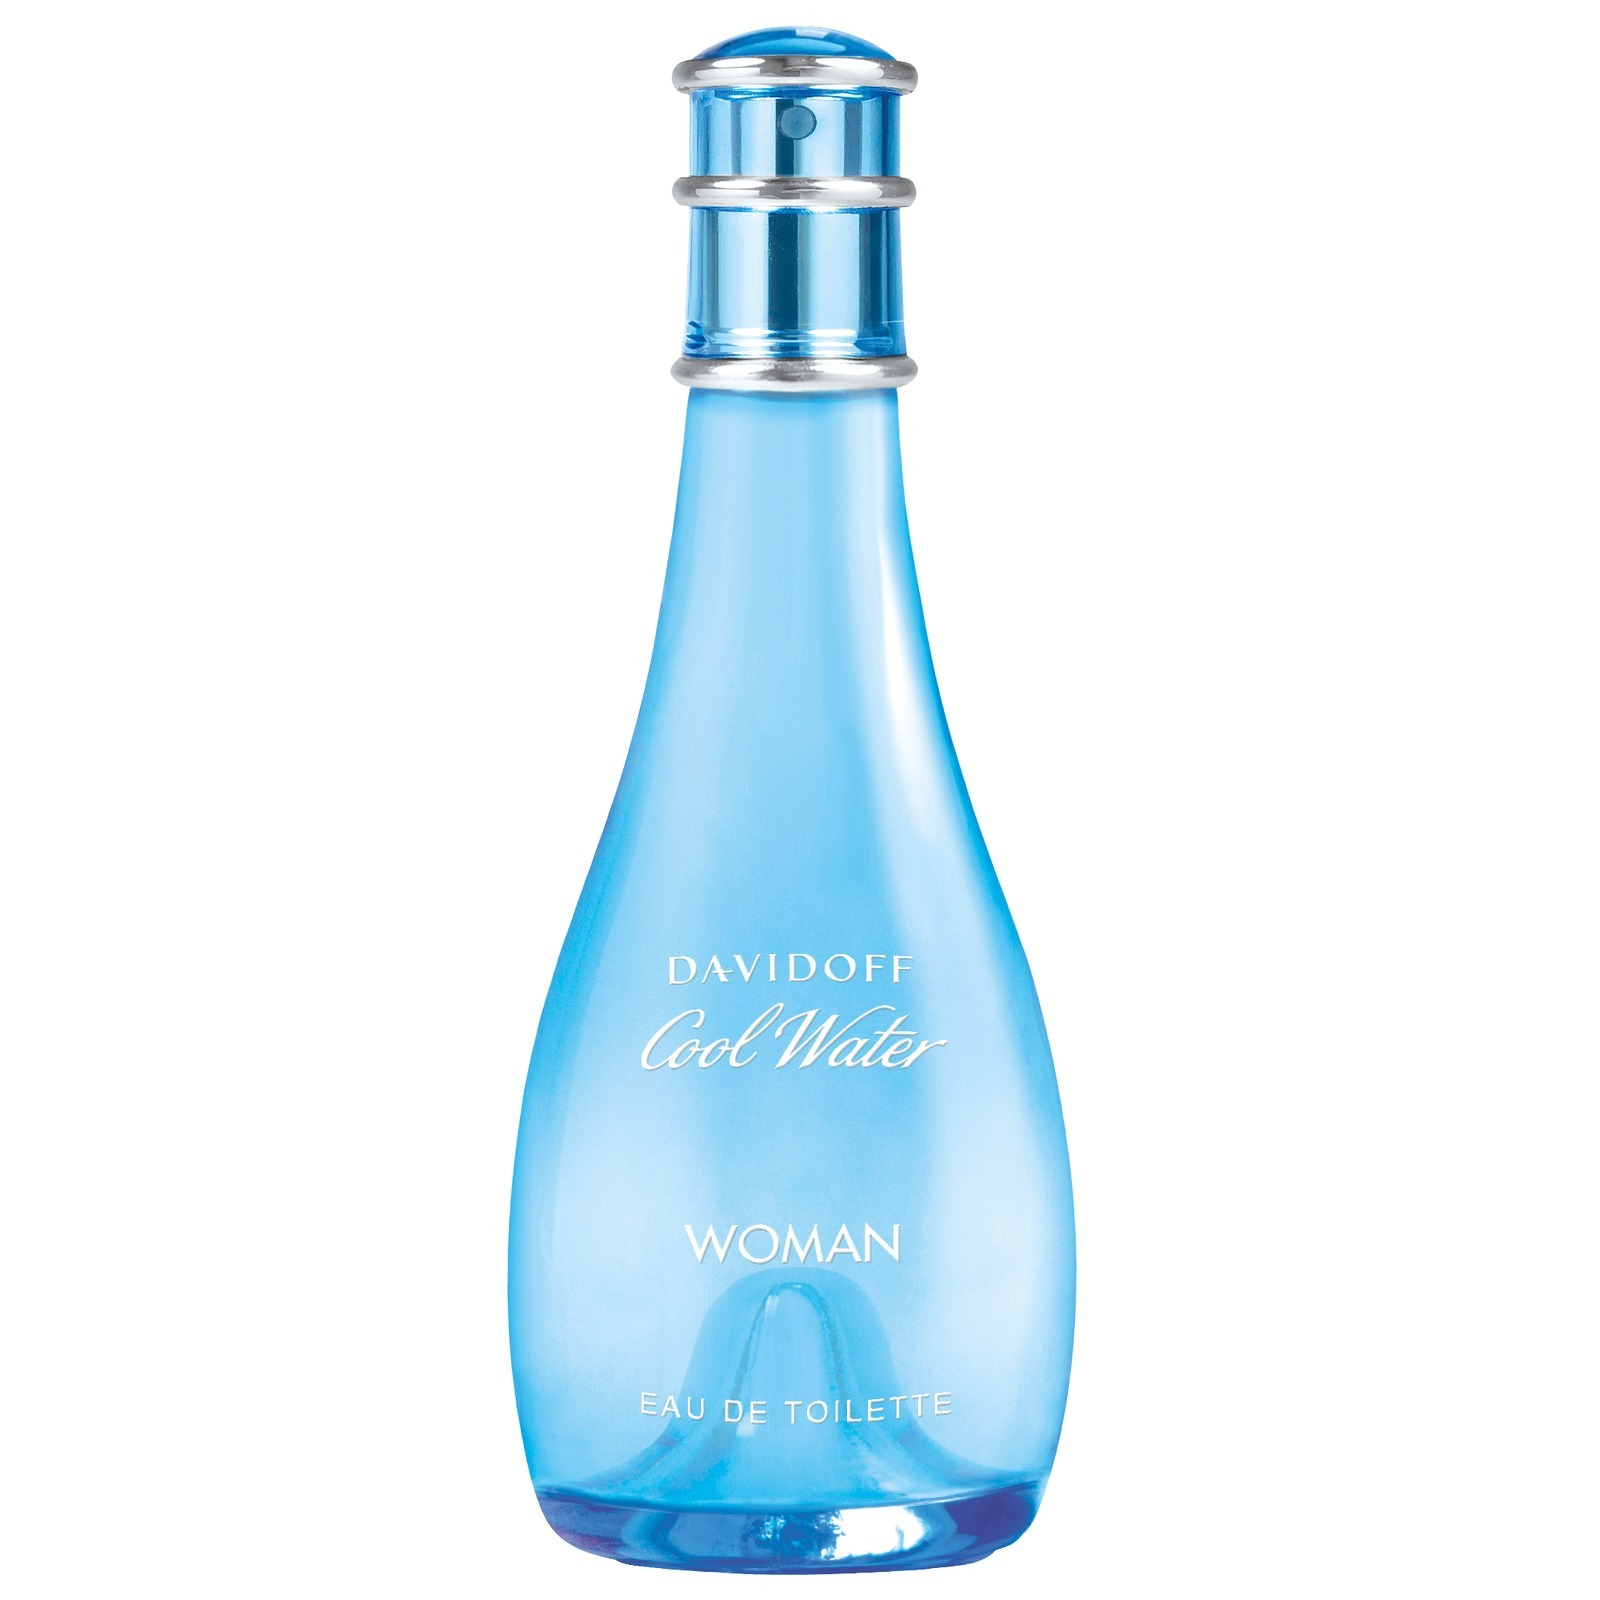 Davidoff - Cool Water Woman Perfume (100ml EDT) image